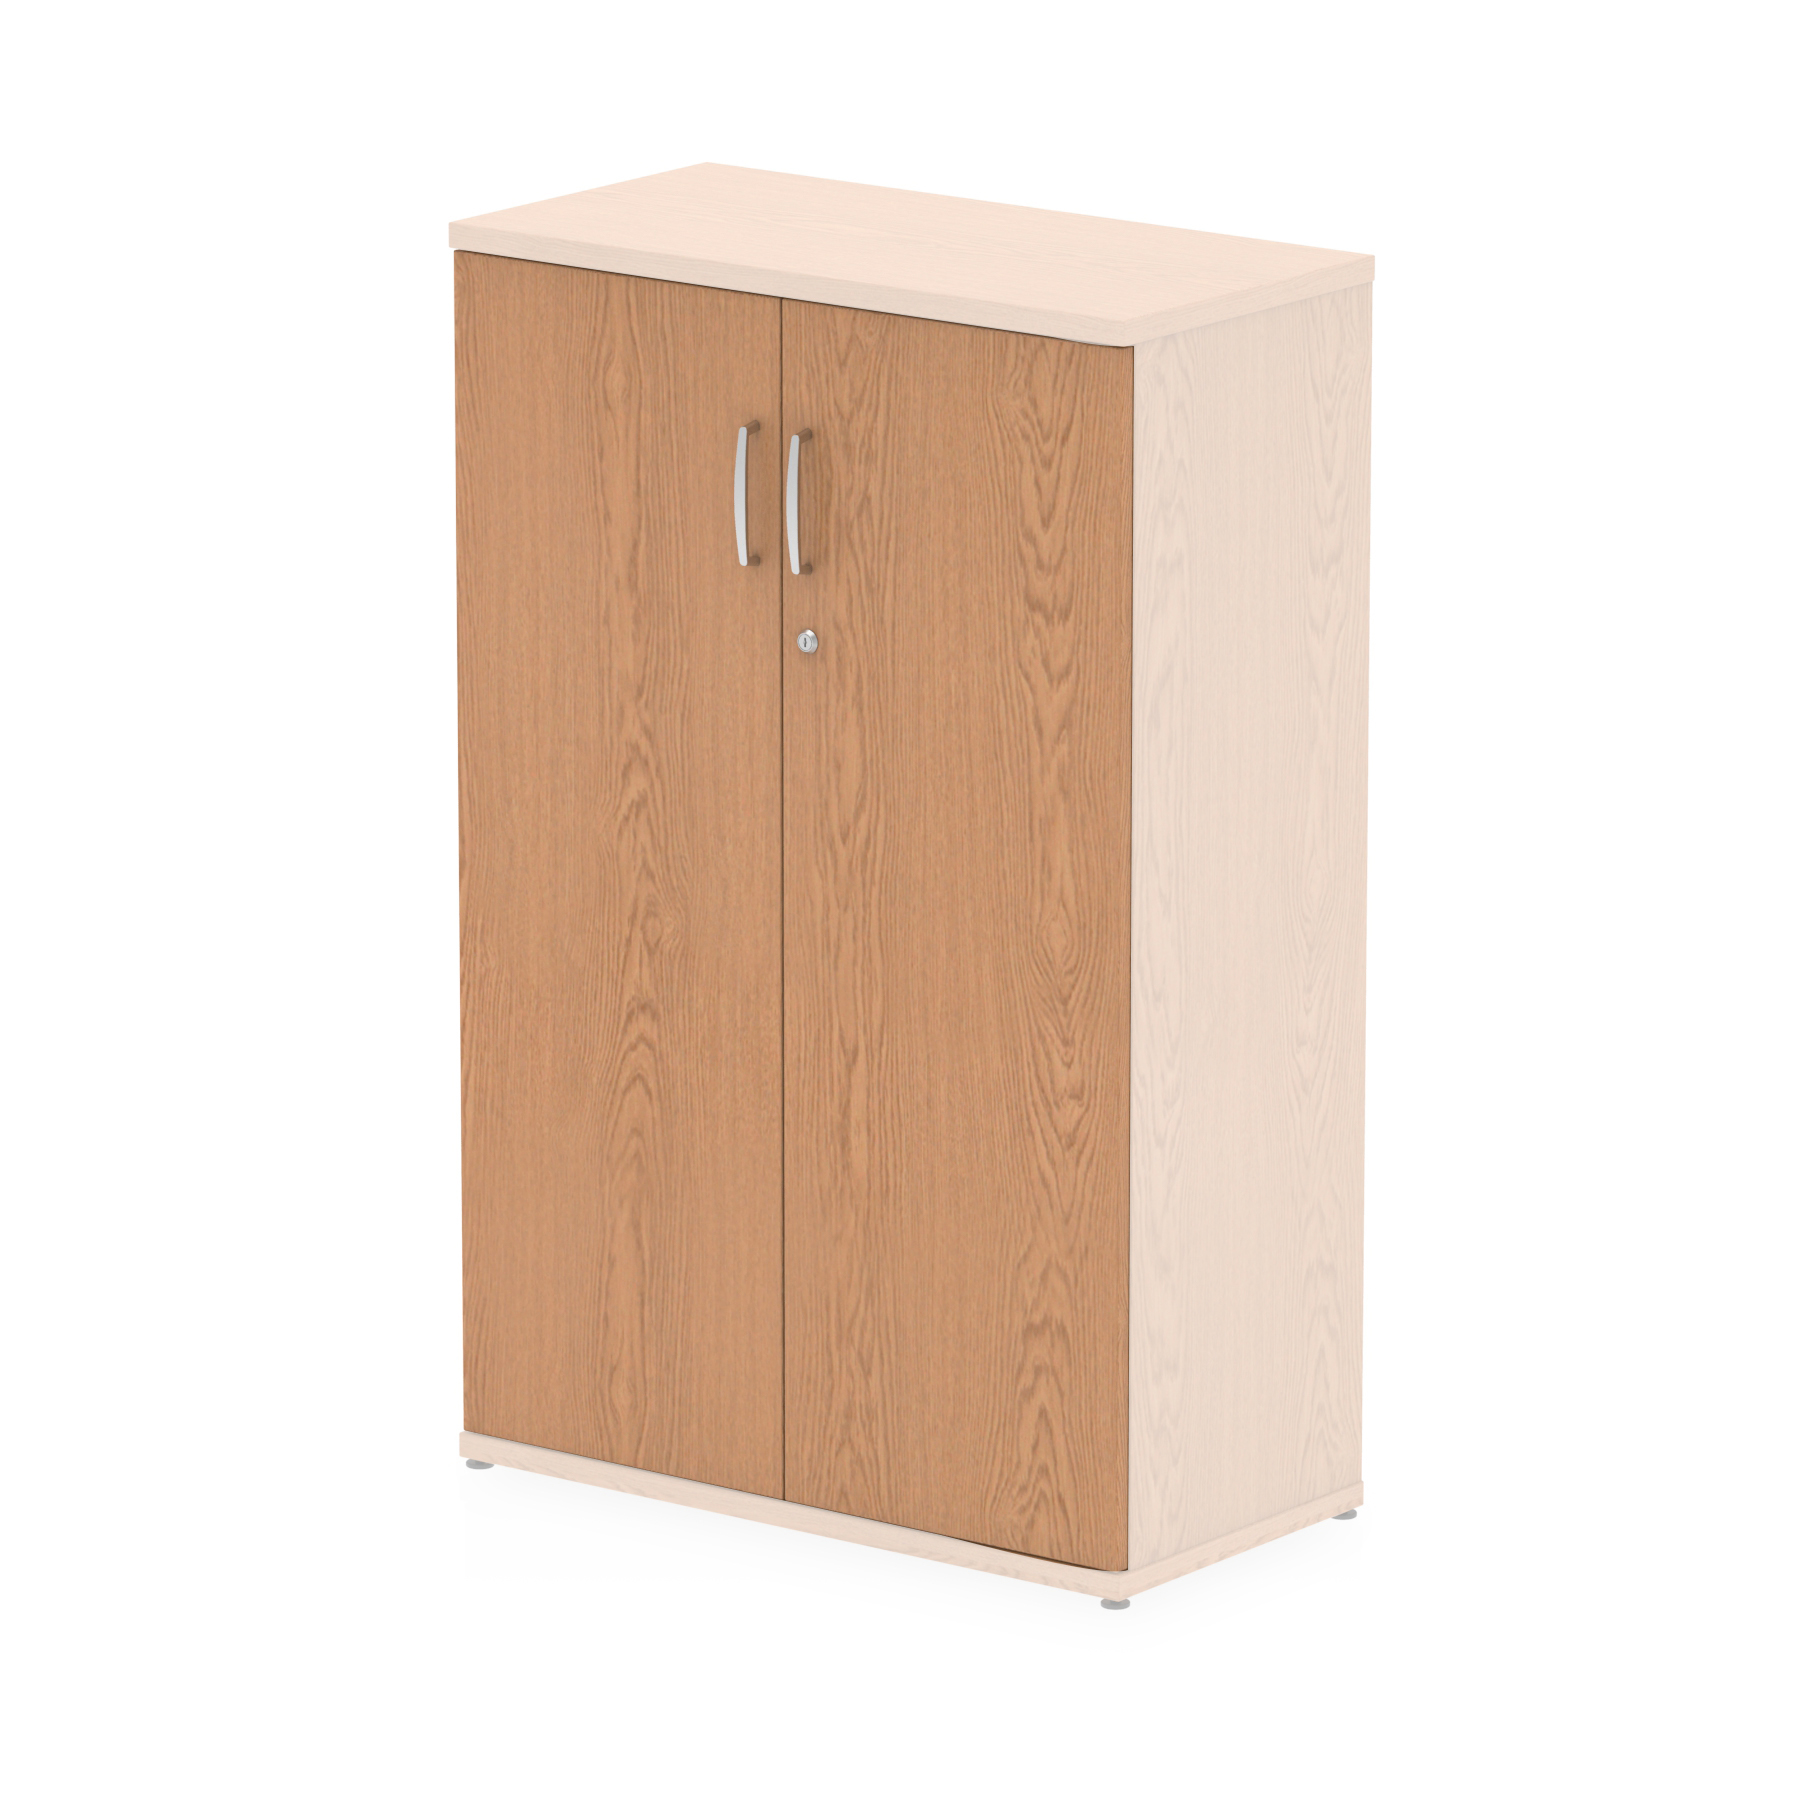 Trexus Door Pack For 1200mm High Cupboard Oak Ref I000762